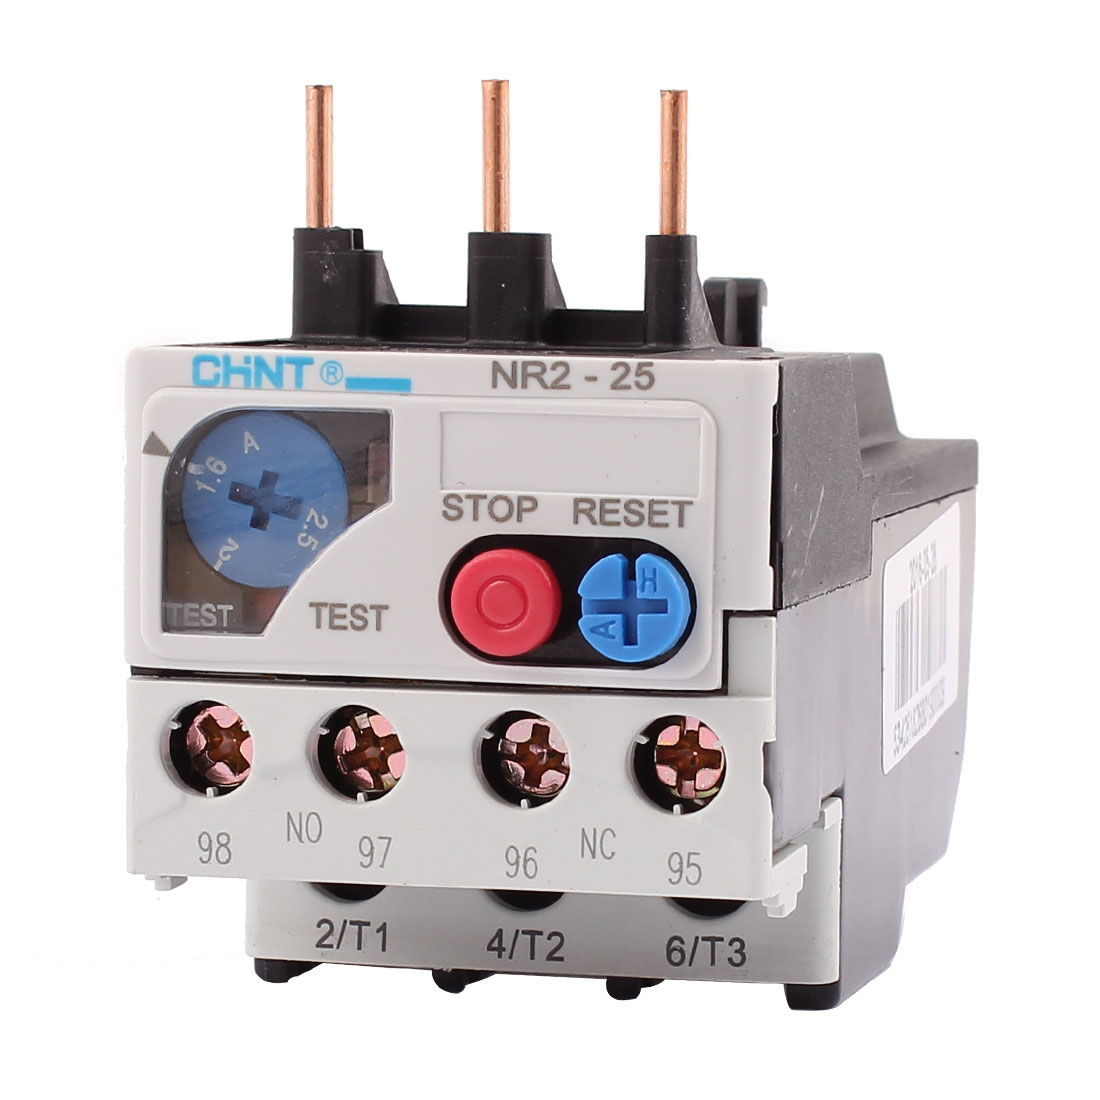 NR2-25 1.6-2.5A 3 Pole 1 NO 1 NC Motor Protector Electric Thermal Overload Relay